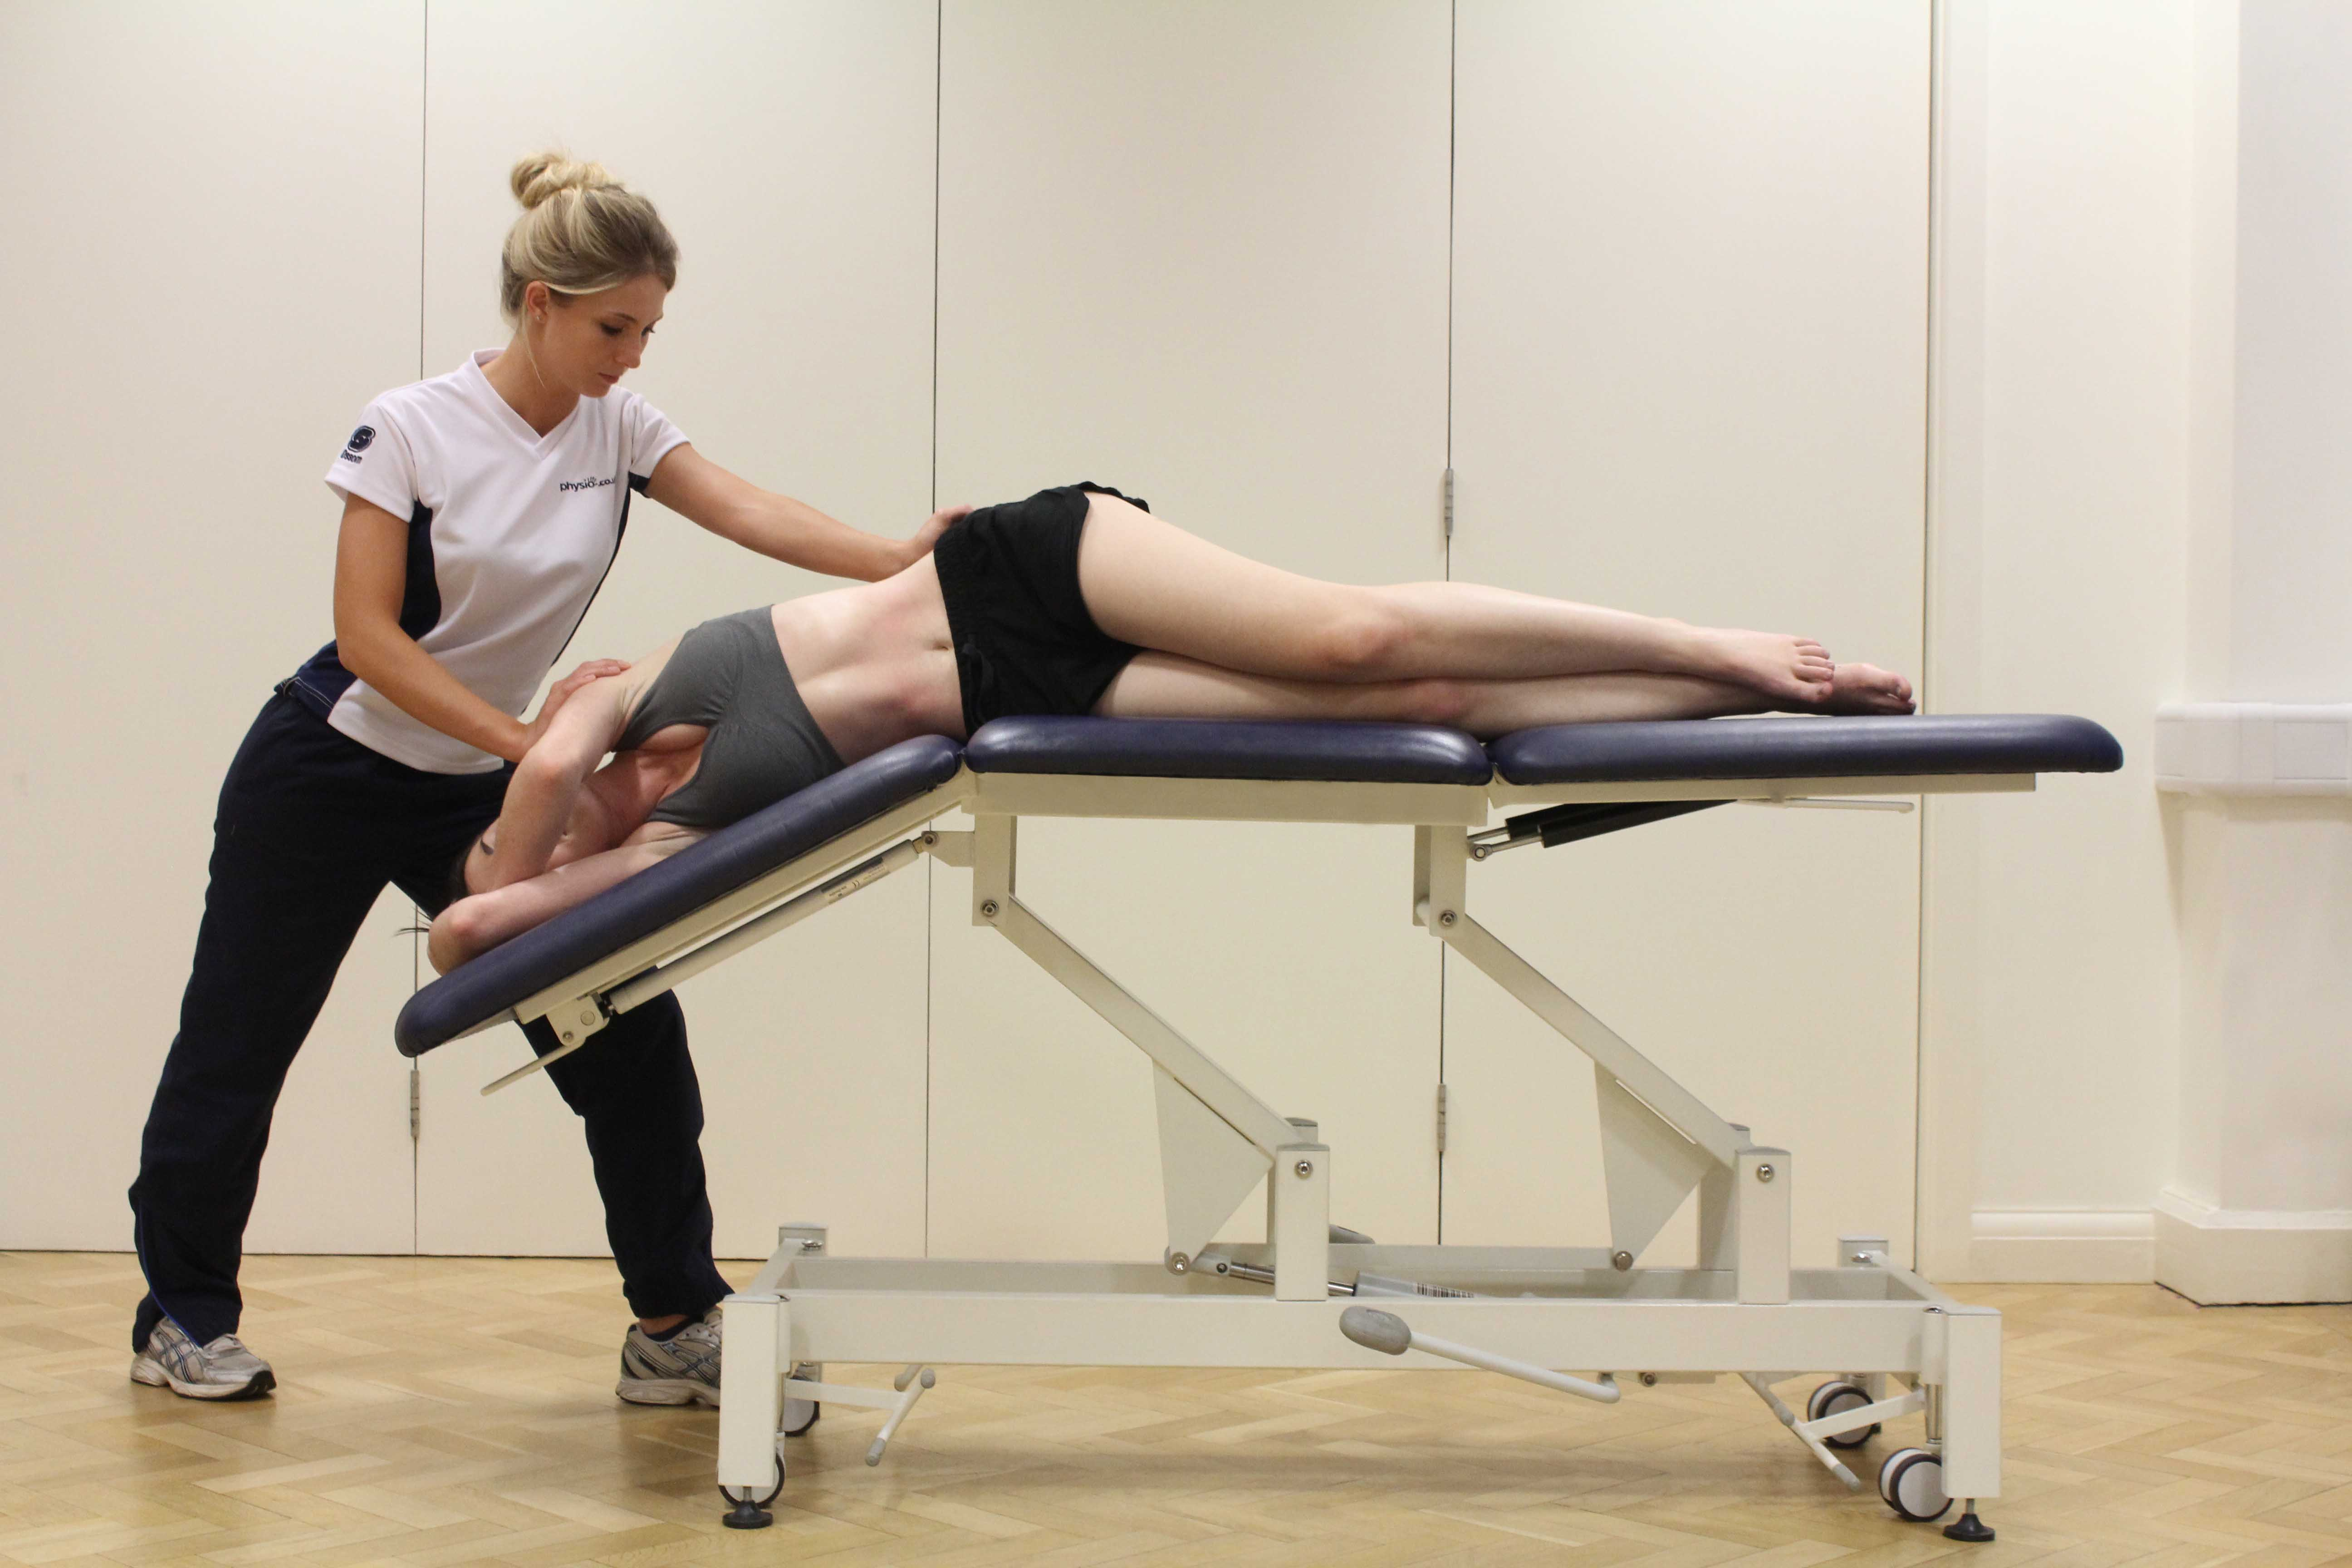 Postural drainage and chest clearence exercises assisted by a specilaist therapist